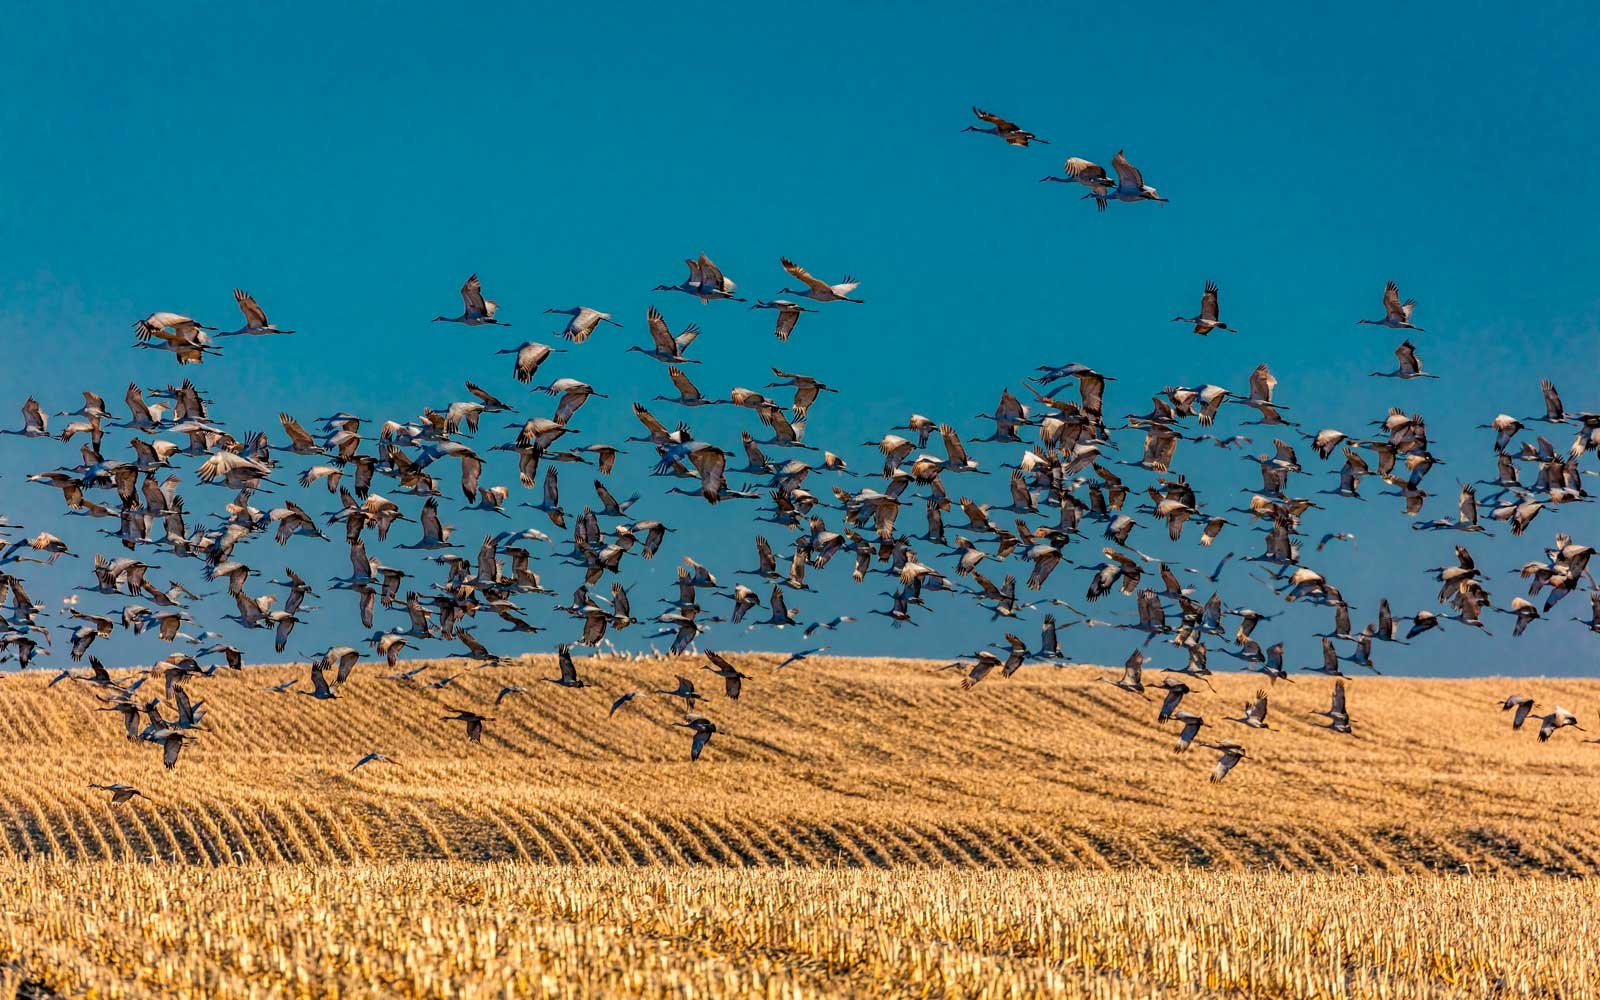 Sandhill cranes take flight over cornfield at sunrise, Platte River, near Grand Island, Nebraska